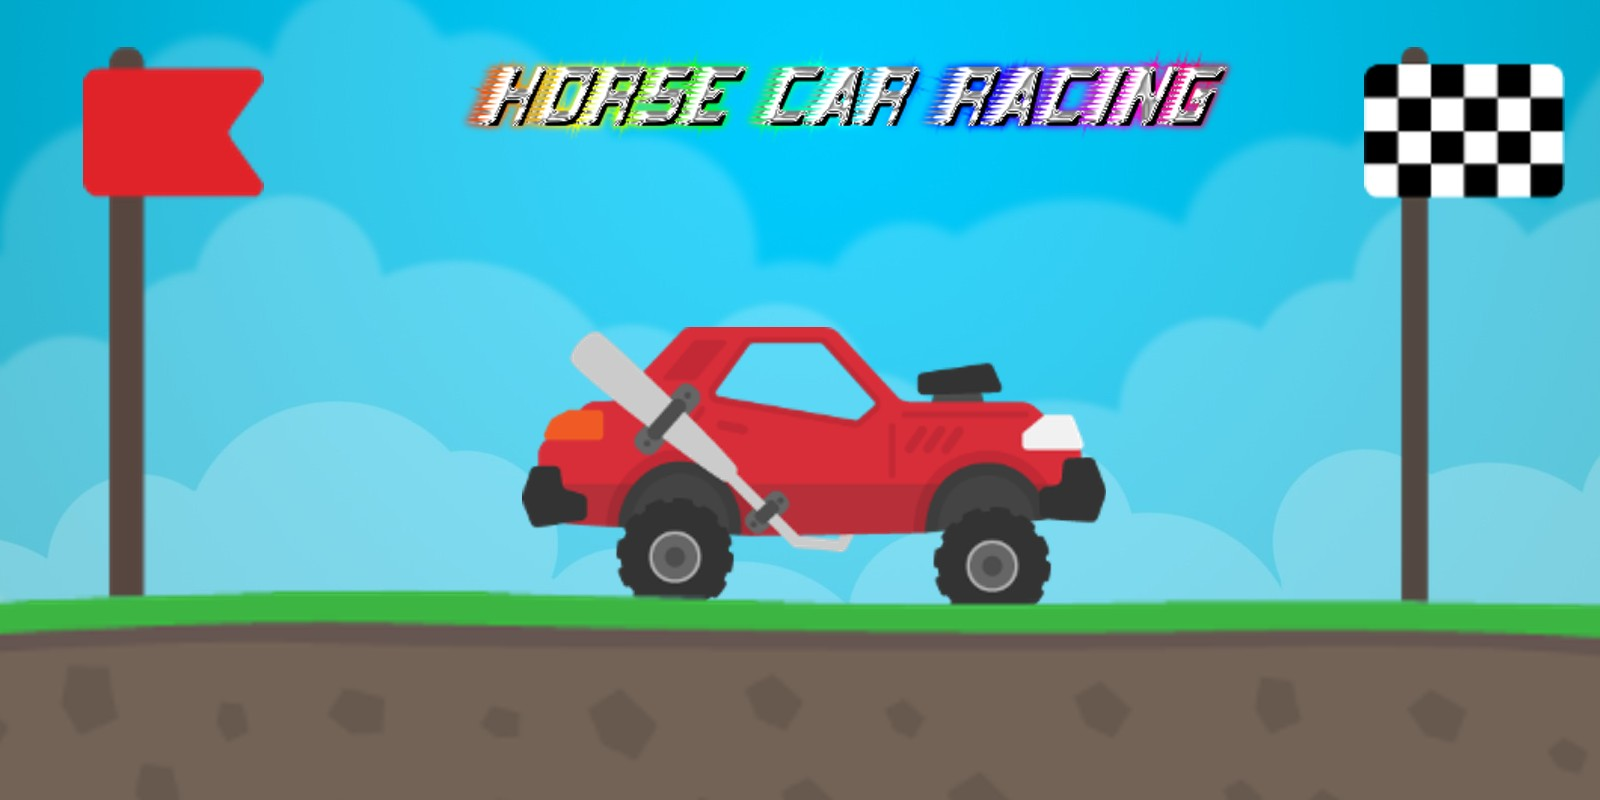 Horse Car Racing - Full Buildbox Project